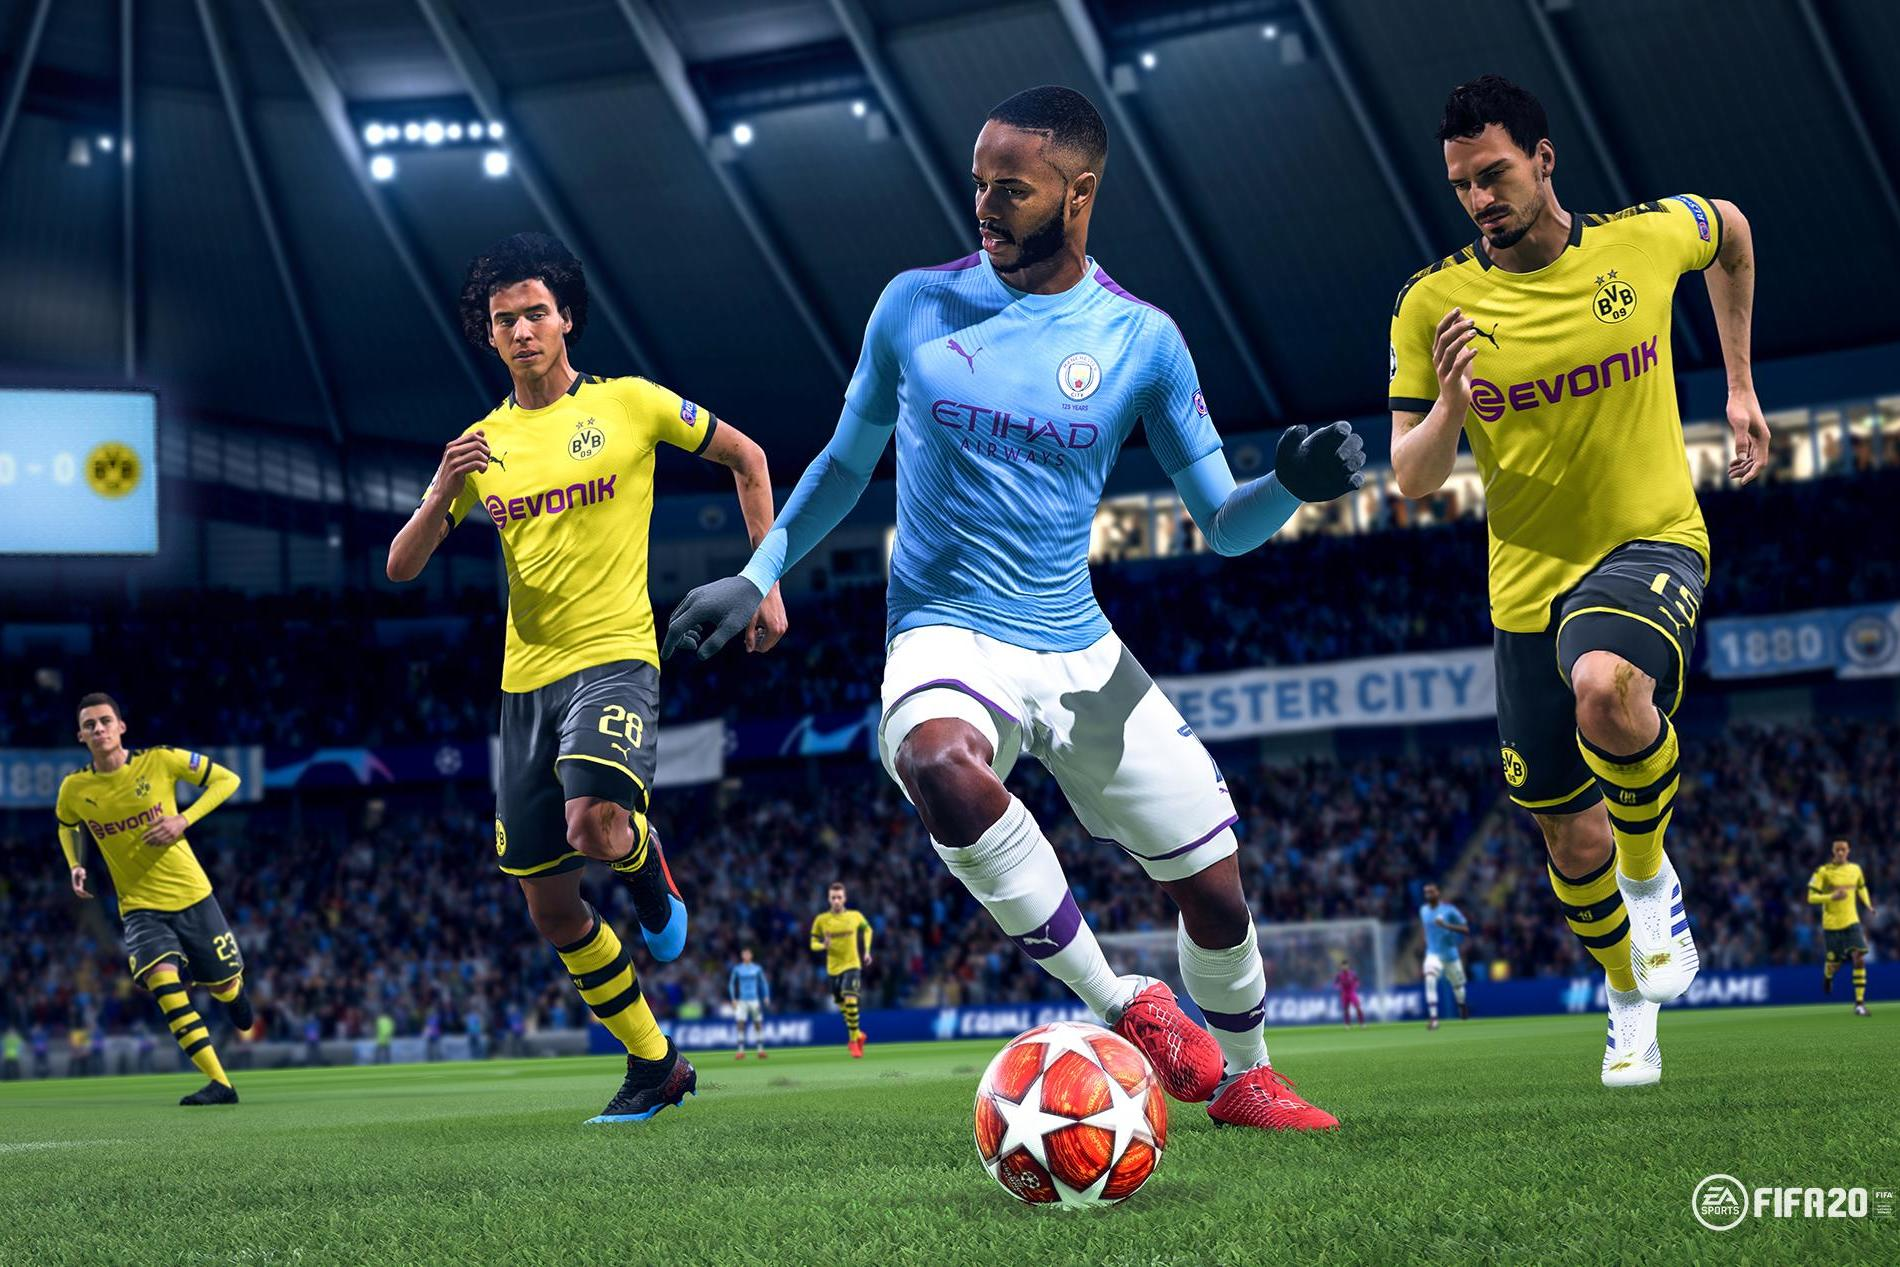 Why Playing FIFA Will Kill Your Football Career